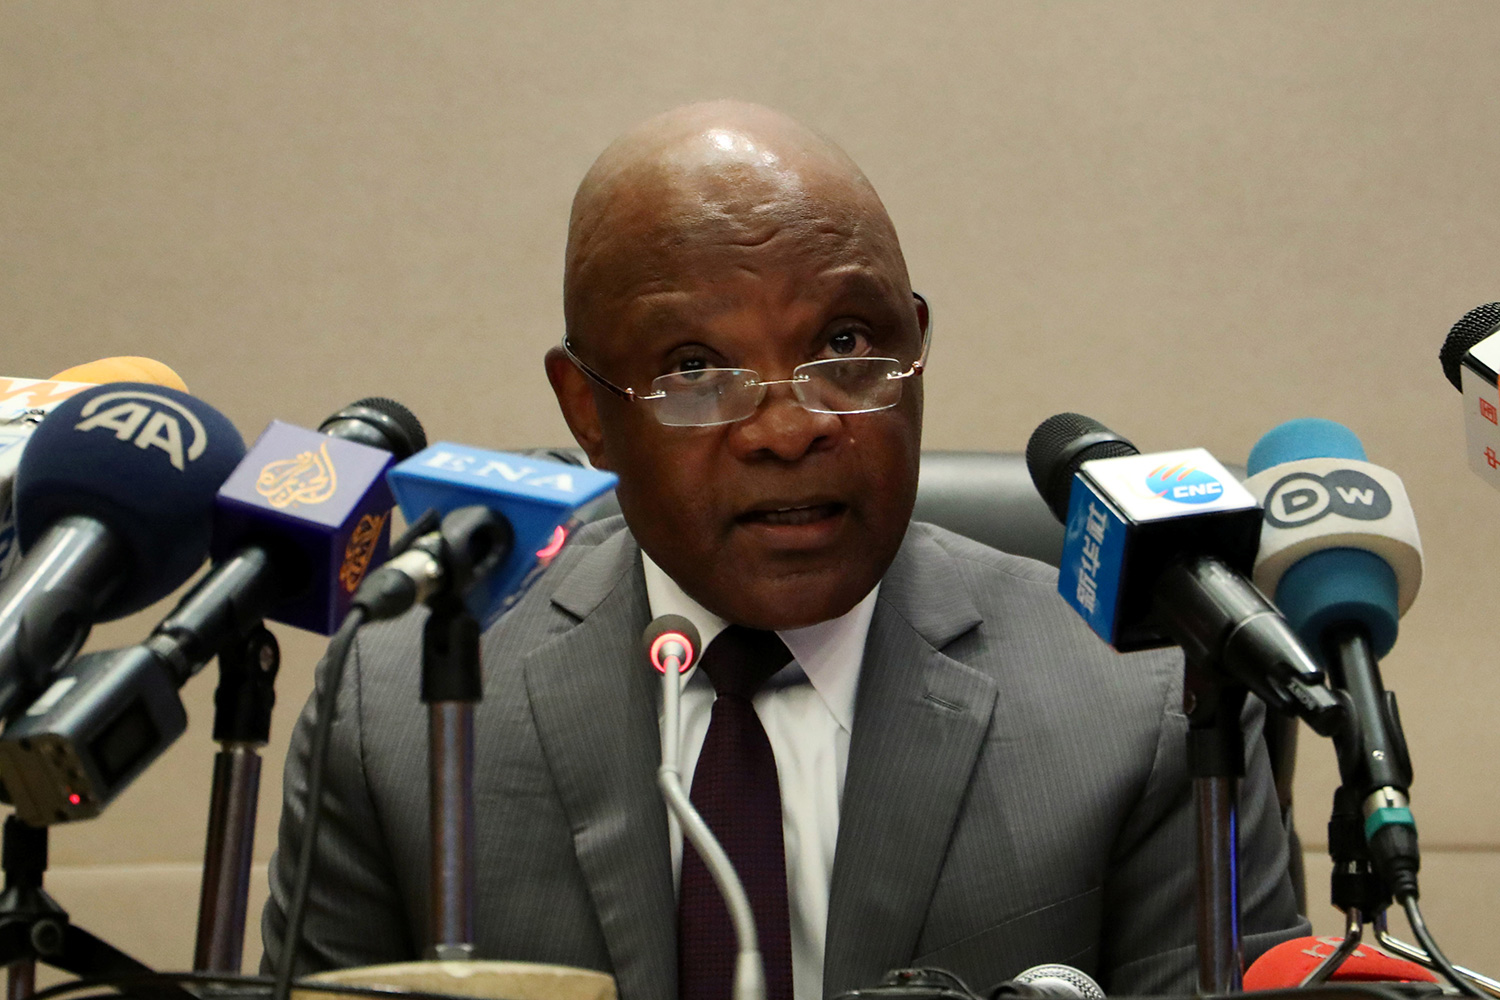 Photo shows the African CDC director speaking in front of a bank of microphones at a press conference.